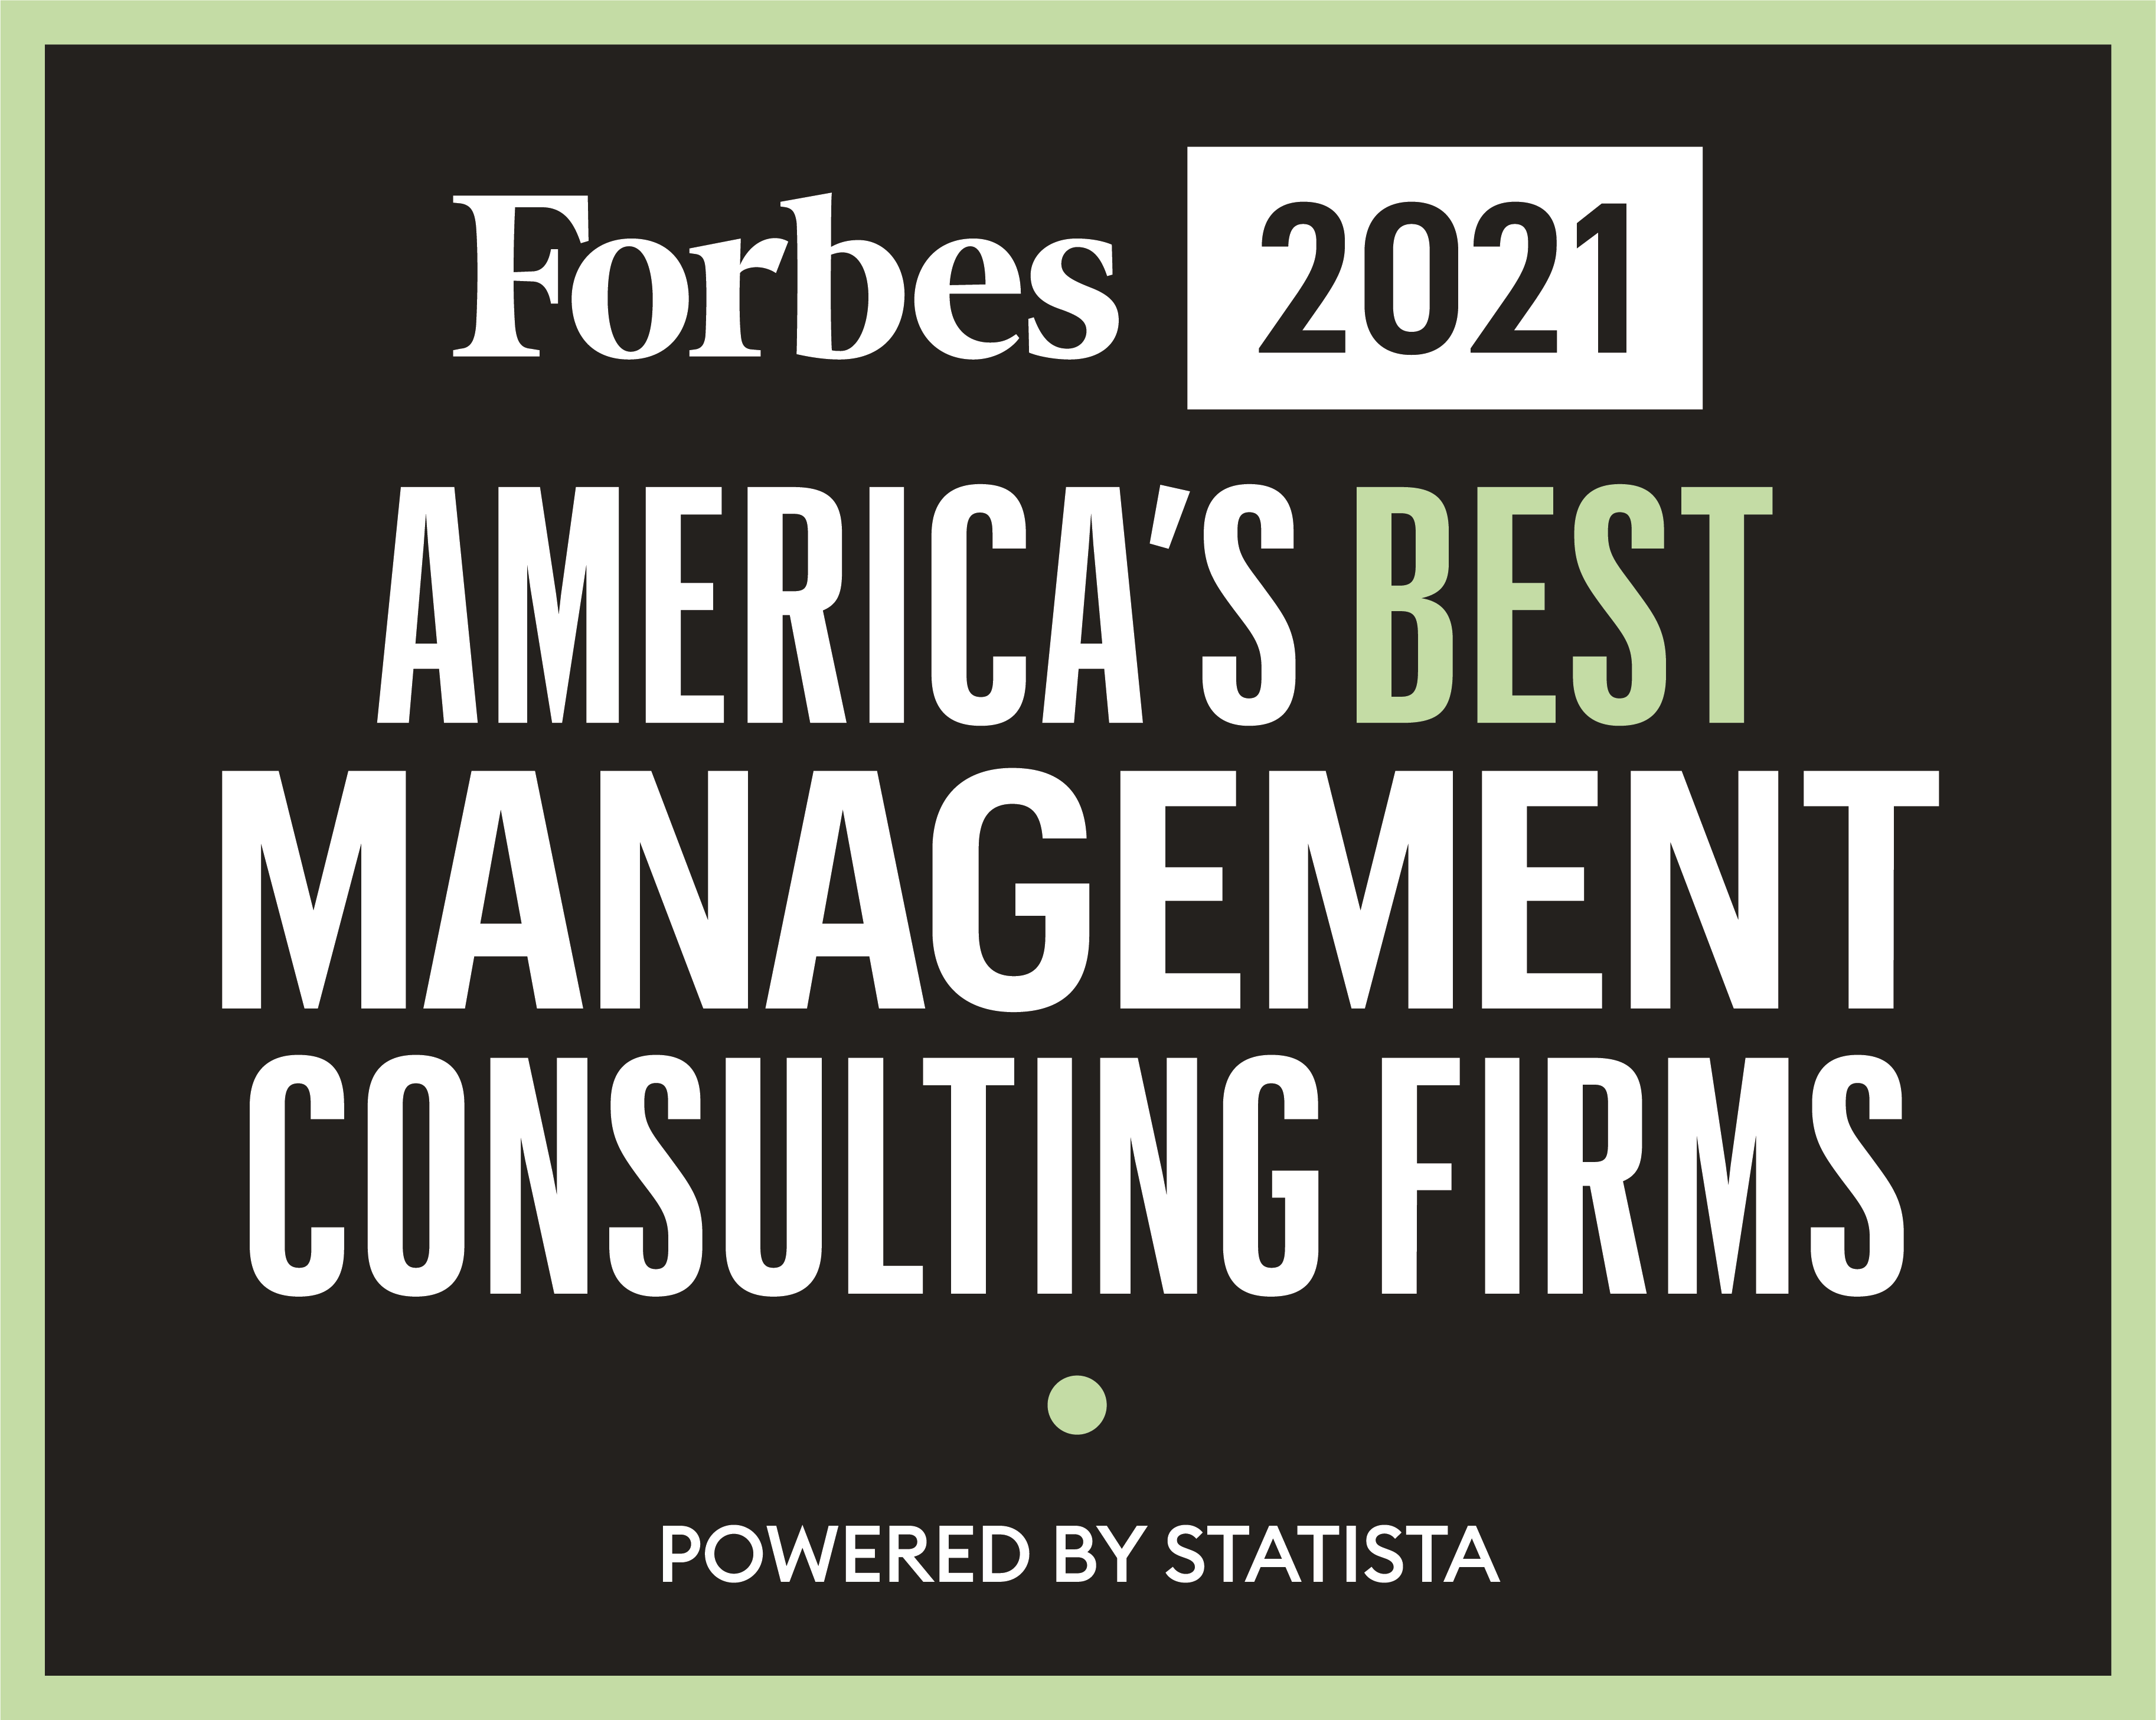 Forbes 2021 America's Best Management Consulting Firms